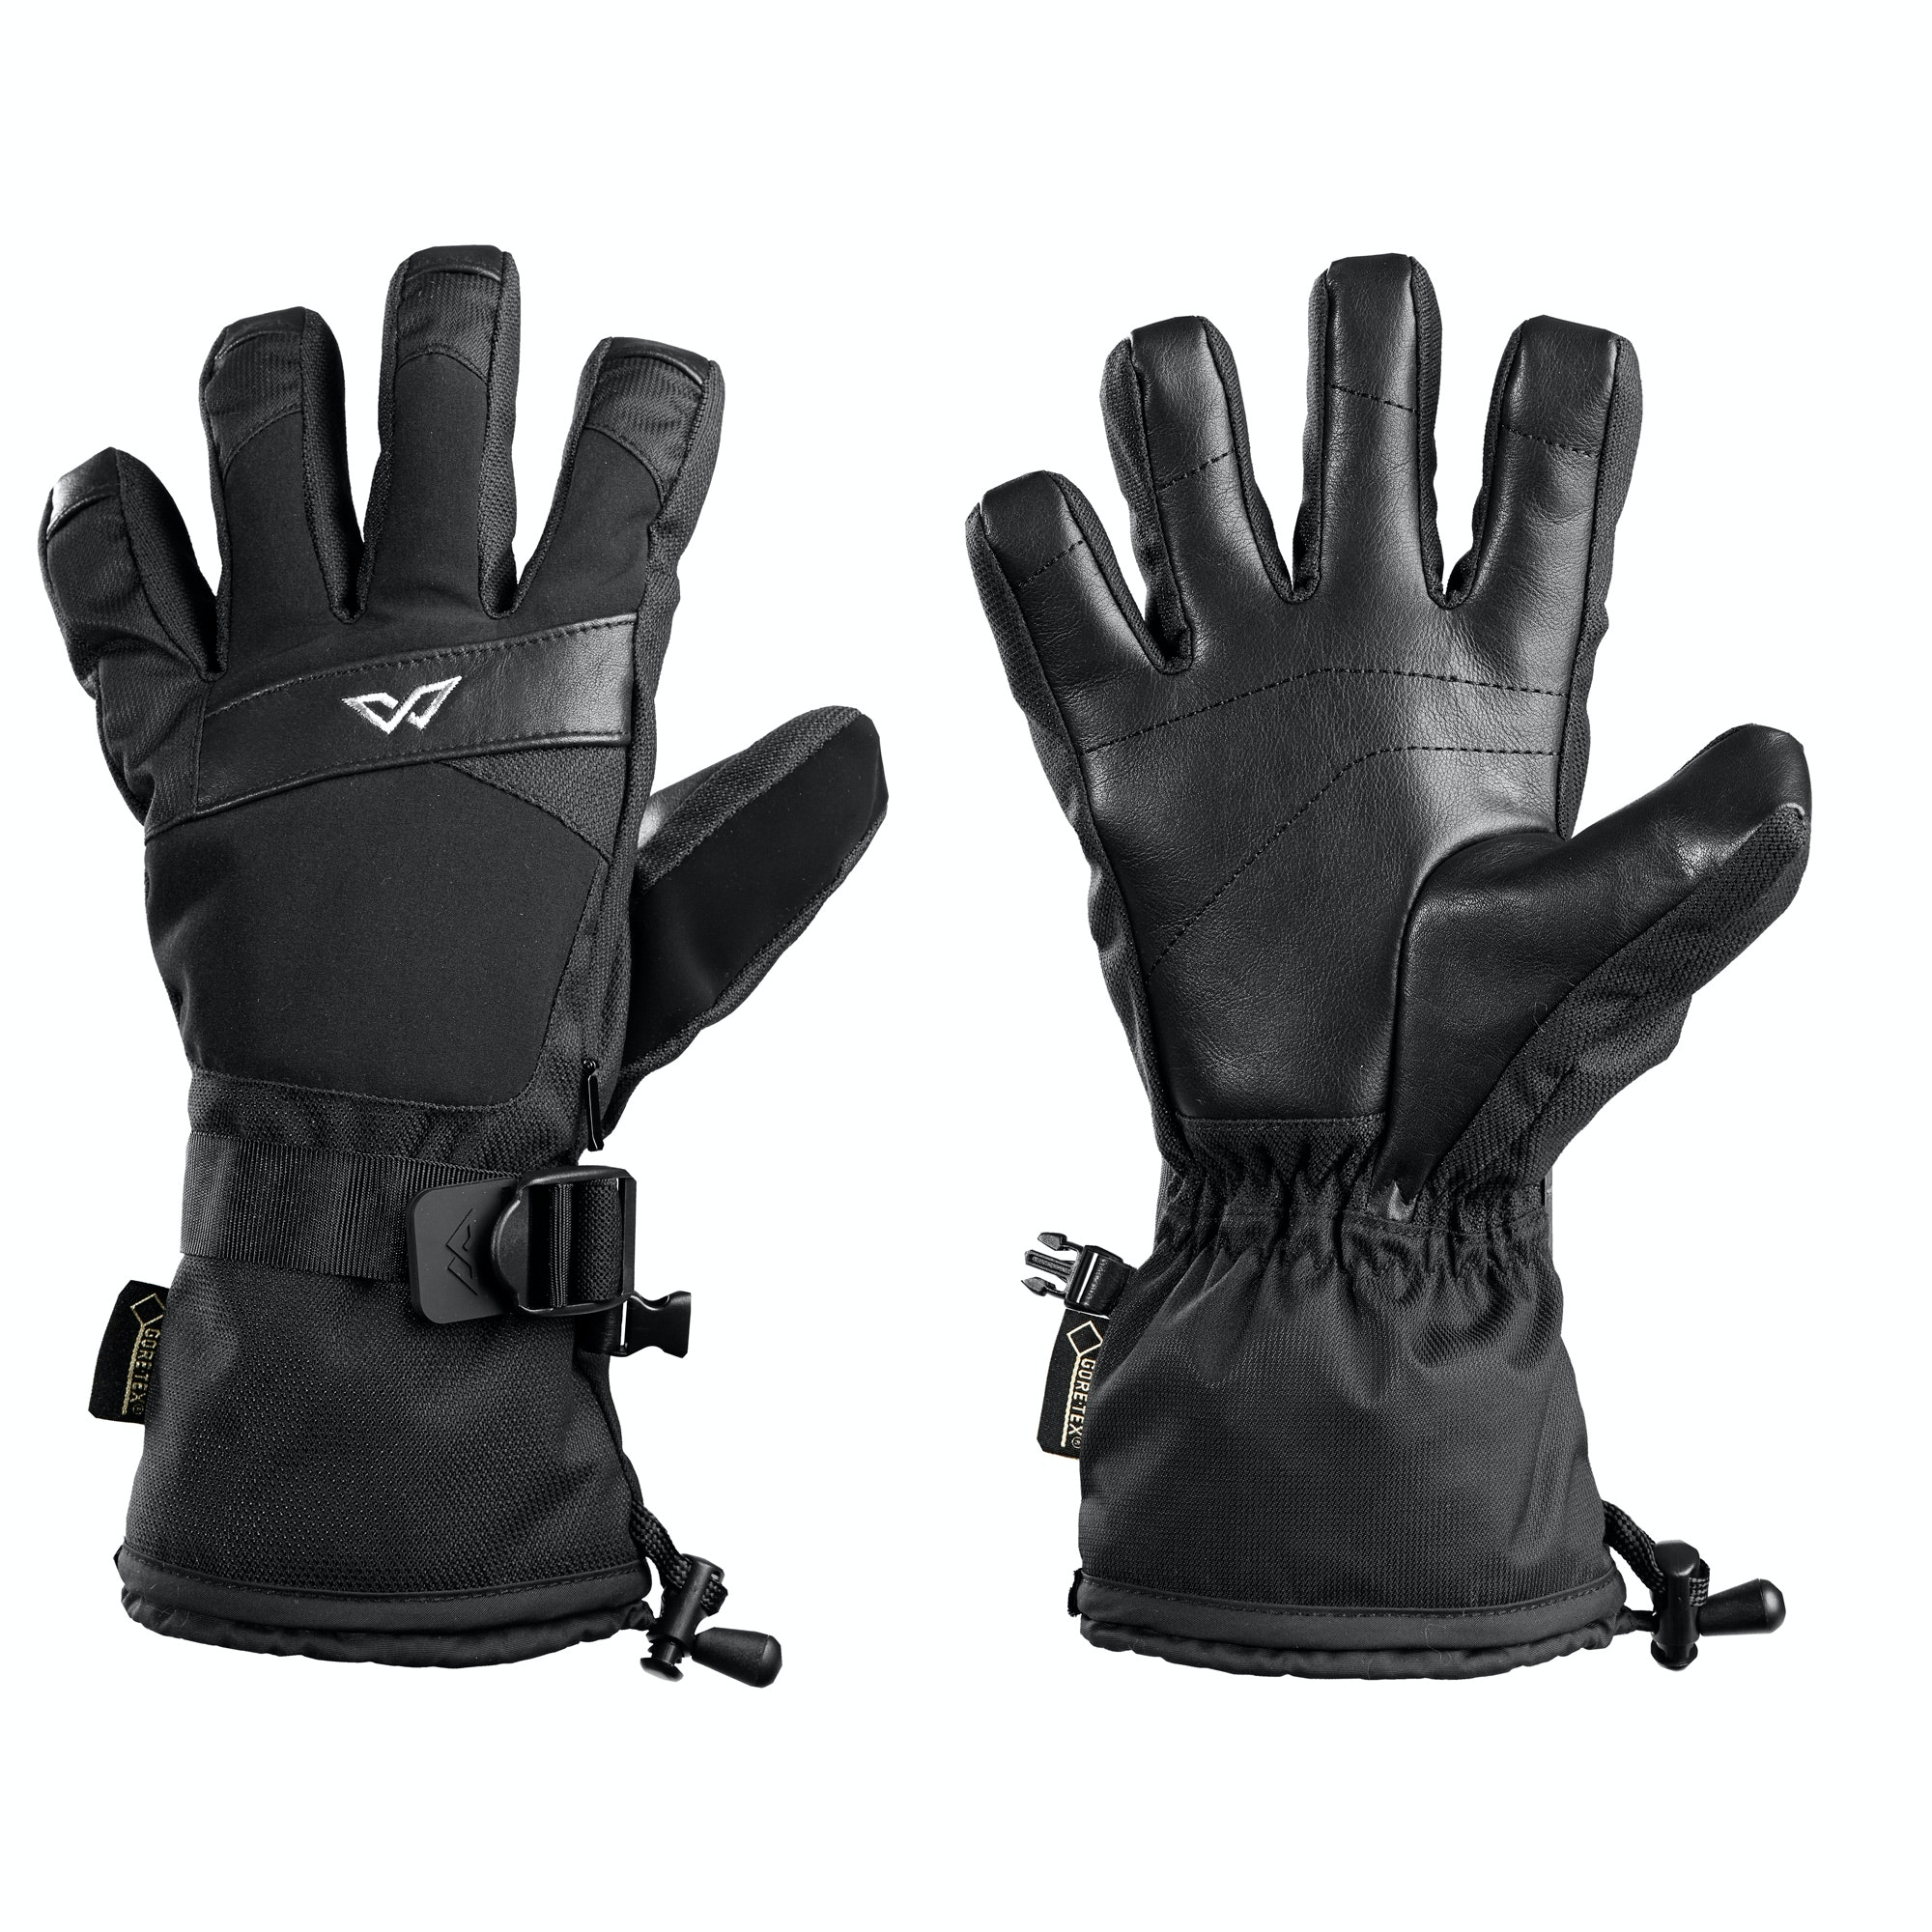 View more of the GORE-TEX Waterproof Stretch Gloves -